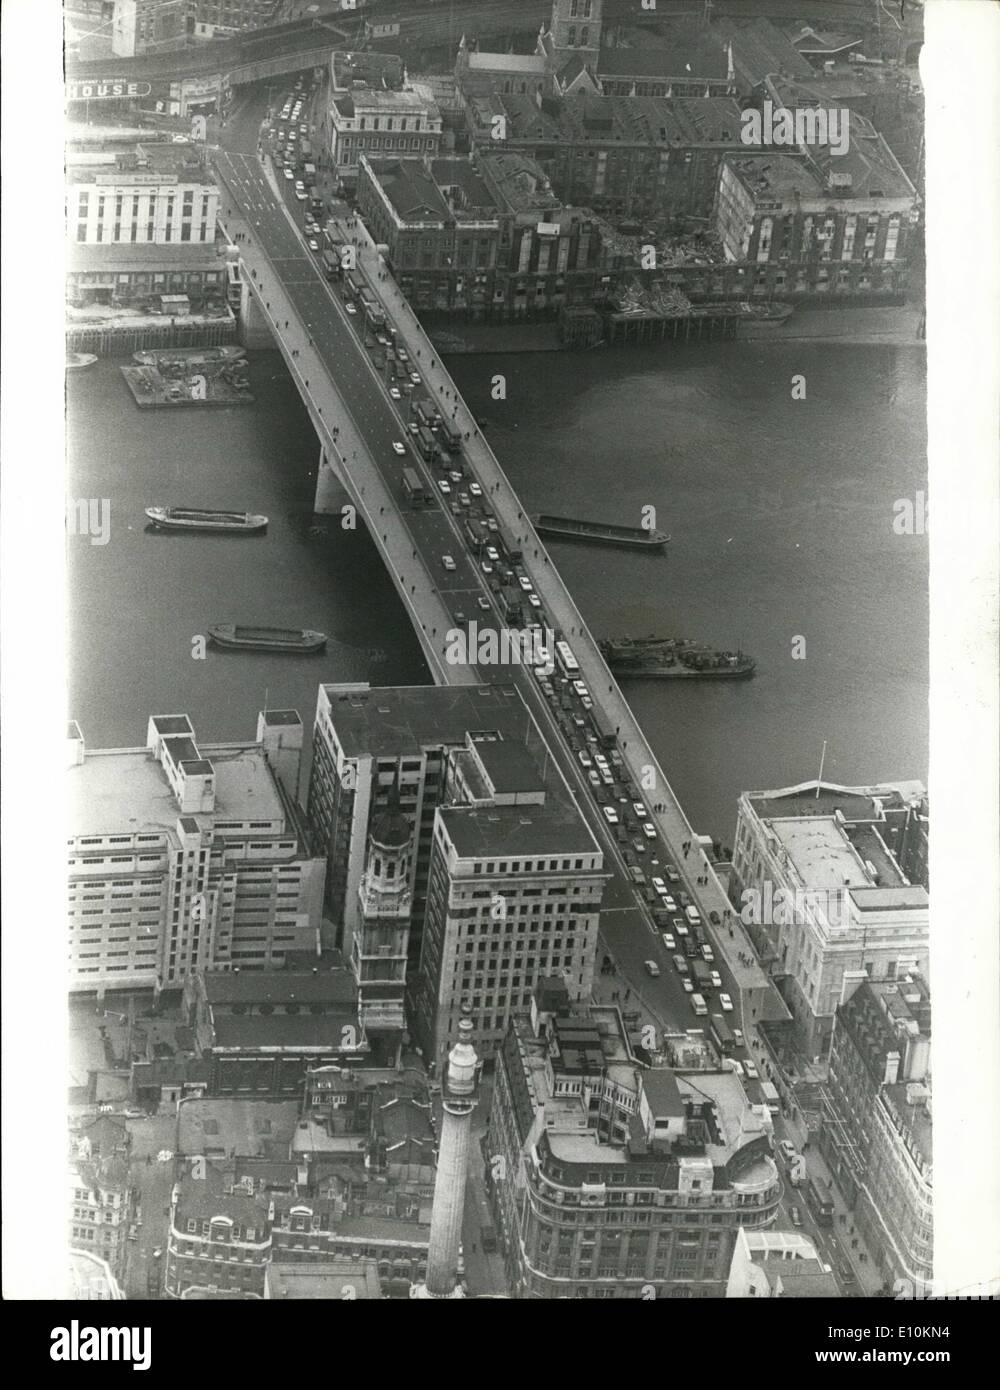 May 05, 1973 - Traffic on London Bridge: This view shows rush hour traffic on the new London Bridge, where the City bound lanes - Stock Image